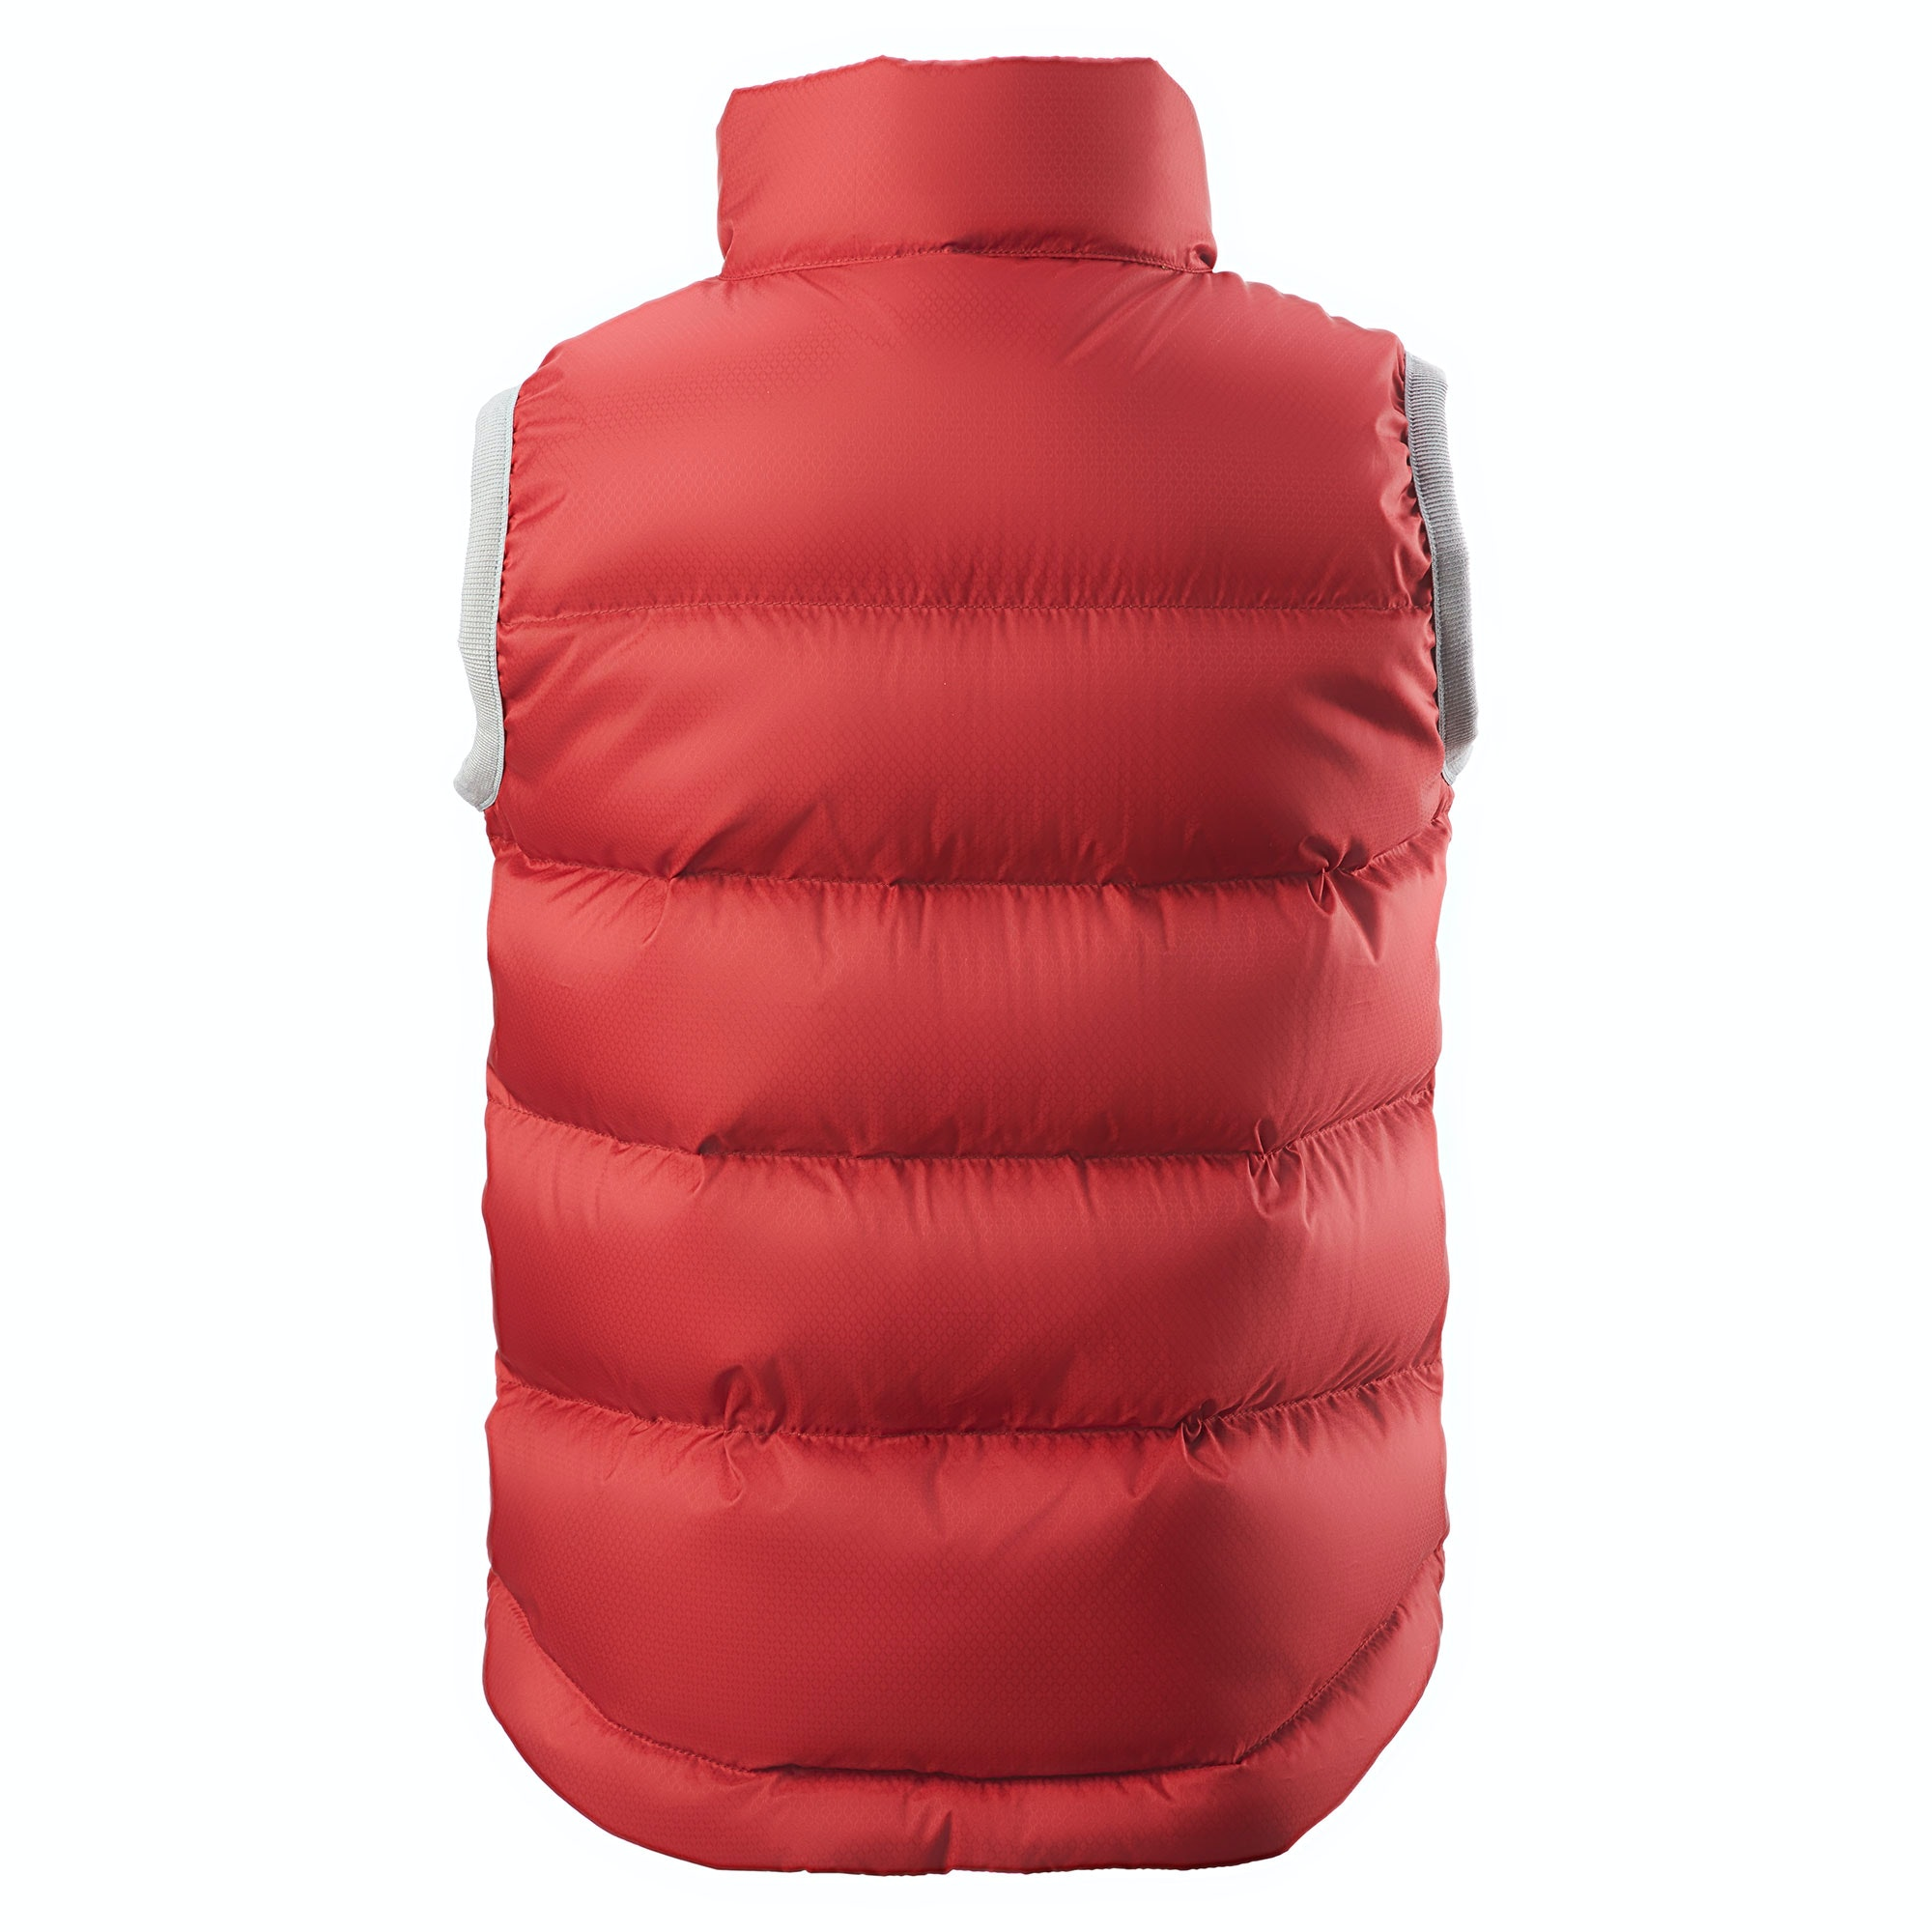 NEW-Kathmandu-Elcho-Kids-039-Boys-039-Girls-039-Warm-Winter-Outdoor-Duck-Down-Puffer-Vest thumbnail 15